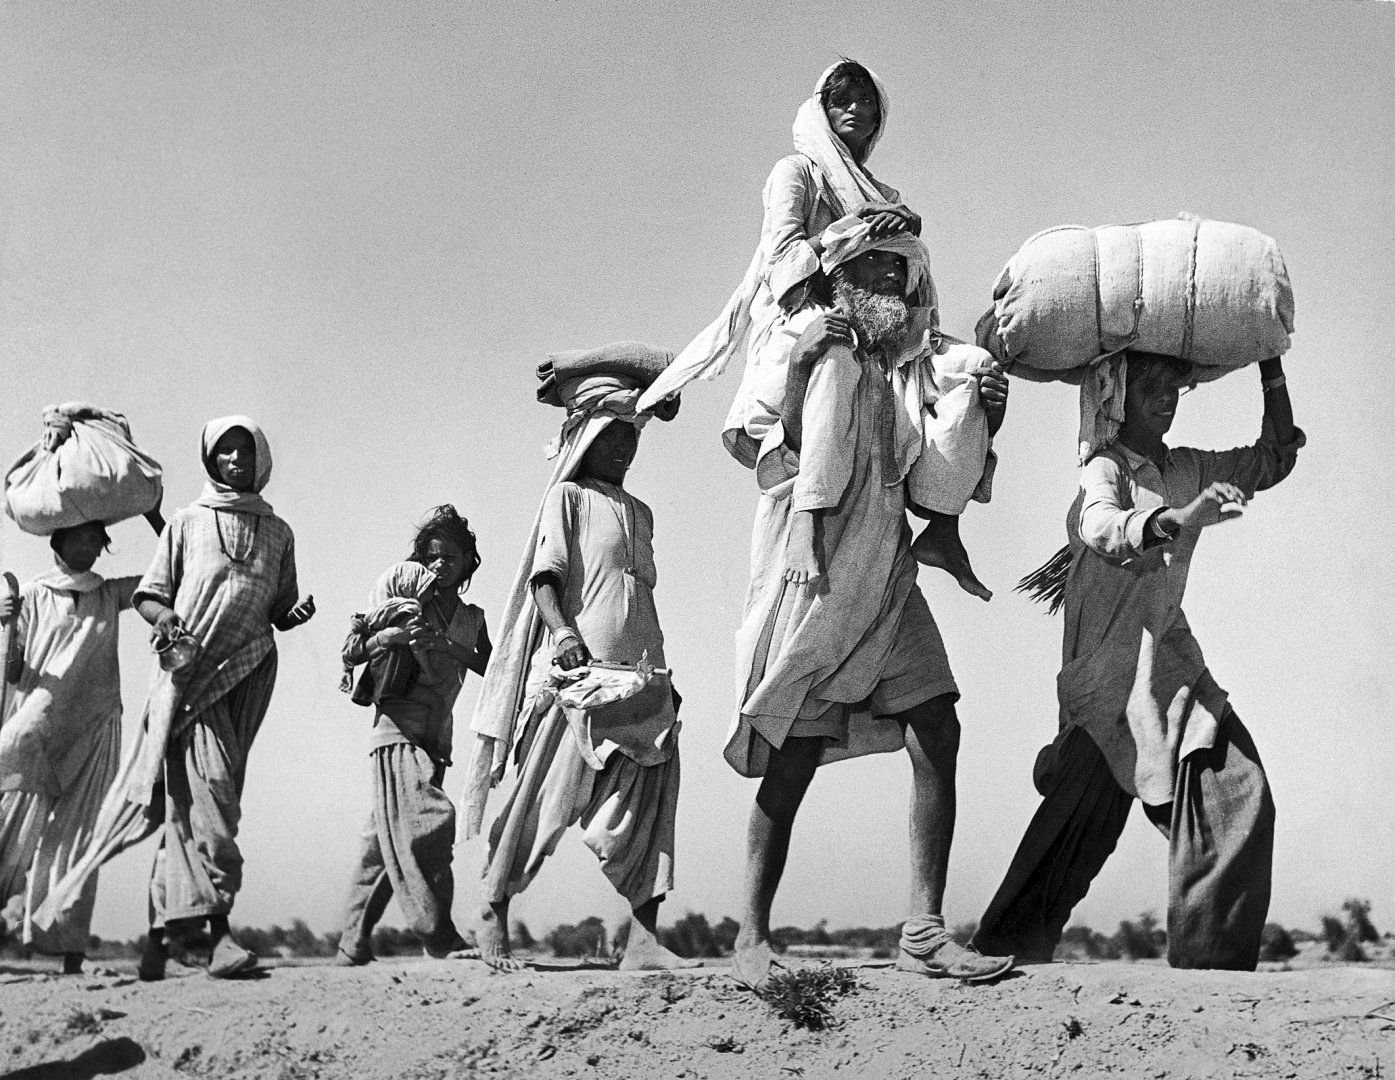 Old Sikh, carrying ailing wife, sets out on the dangerous journey to Indian border